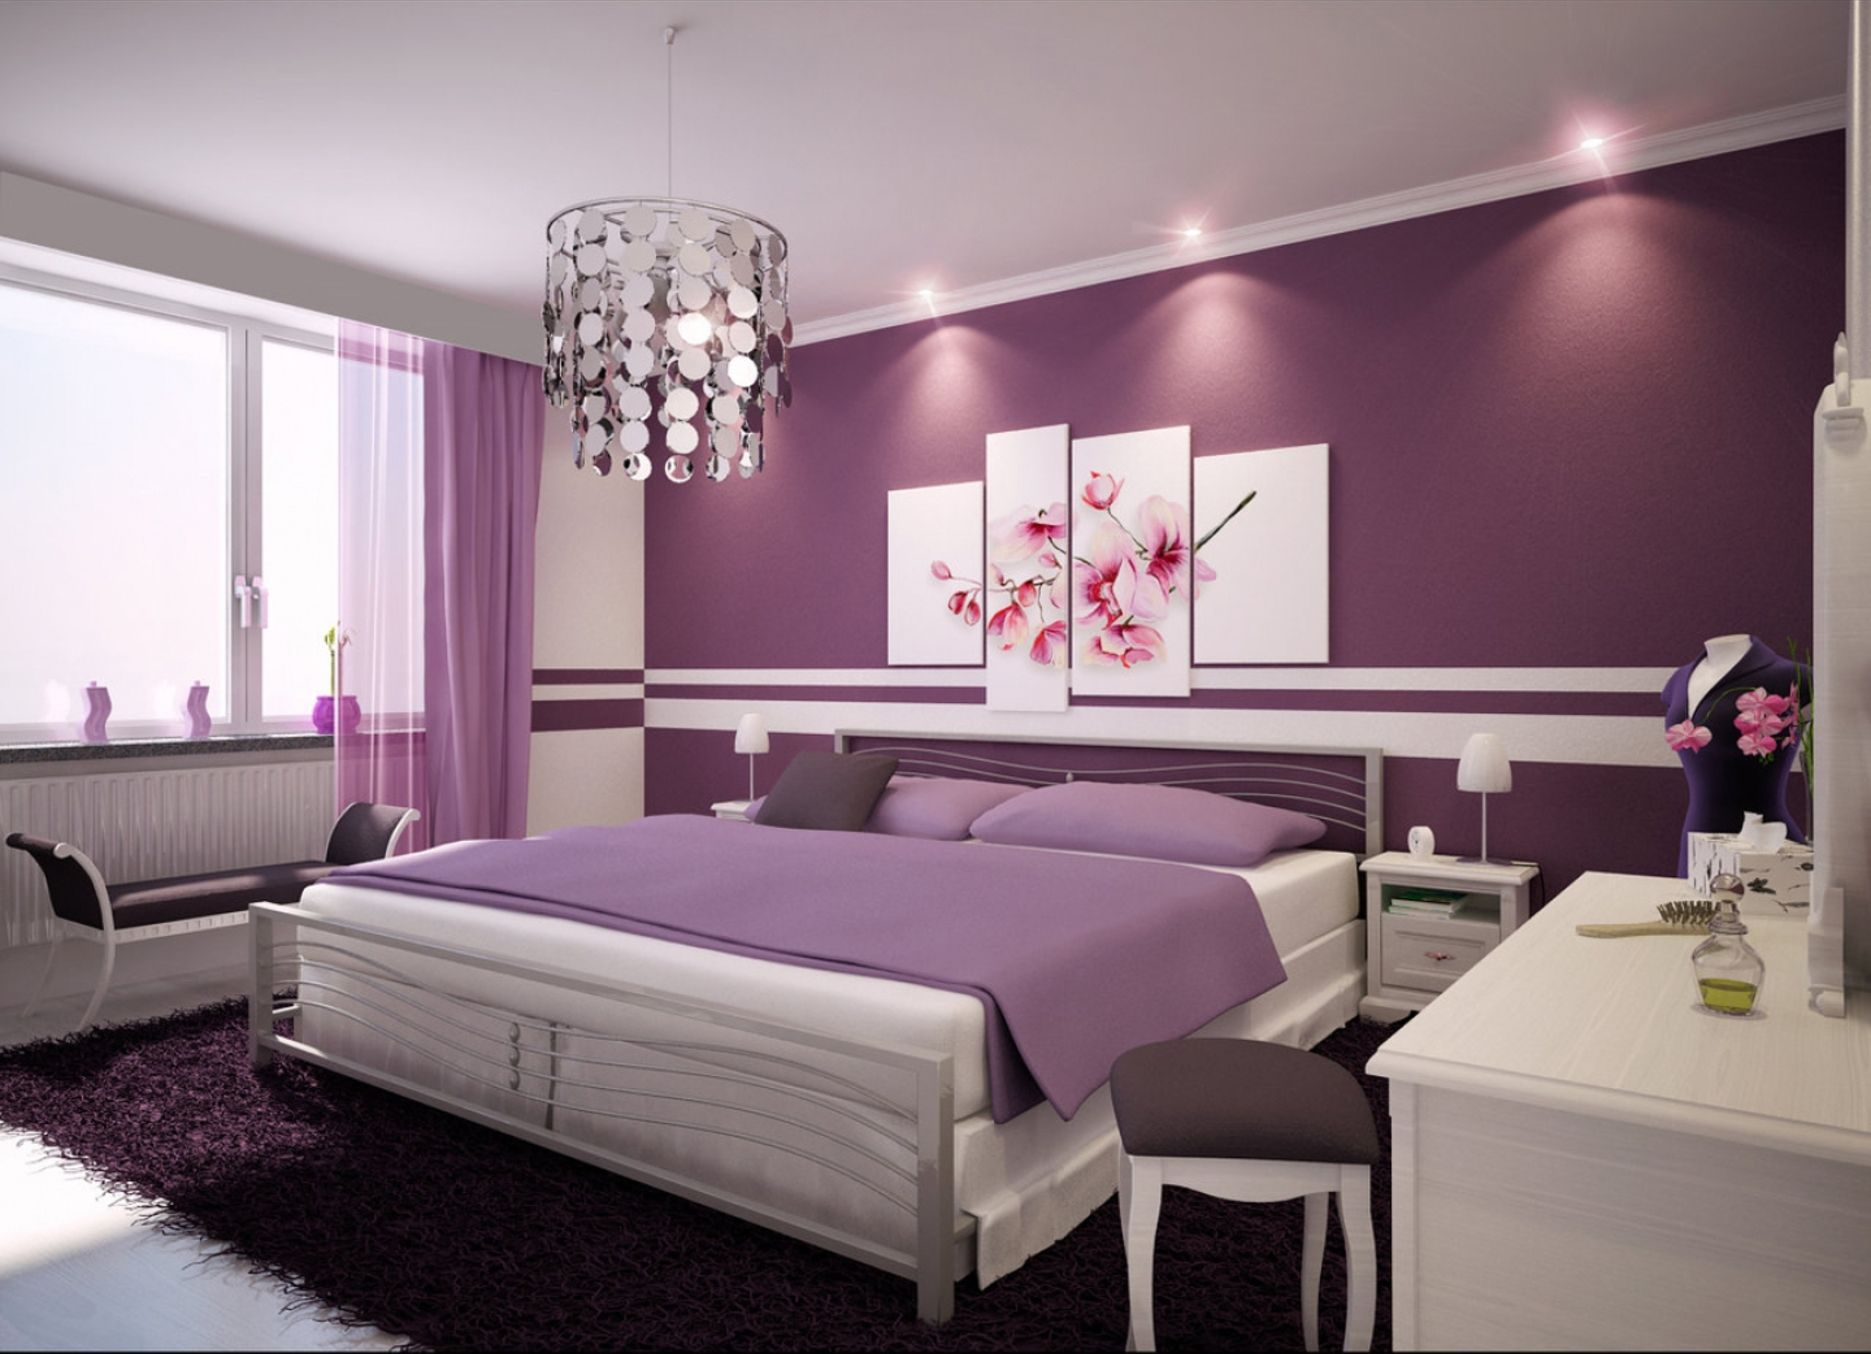 Bedroom Design For Girls With Purple Wallpaper And Large King Bed In Small Room Purple Bedroom Design Beautiful Bedroom Designs Home Bedroom